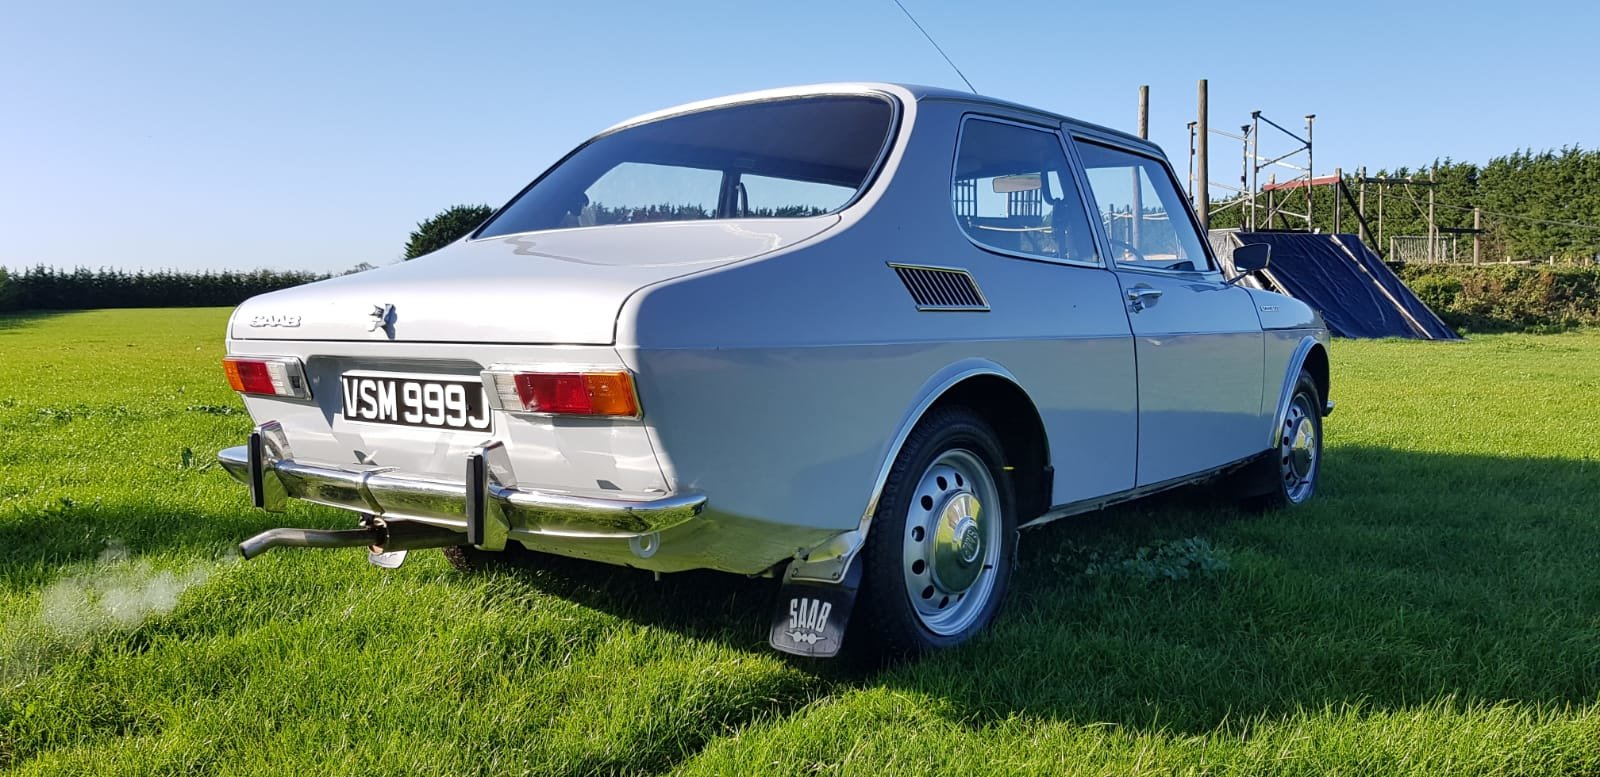 1971 Saab 99 1709cc 2-door, 79k miles, immaculate condition For Sale (picture 2 of 12)